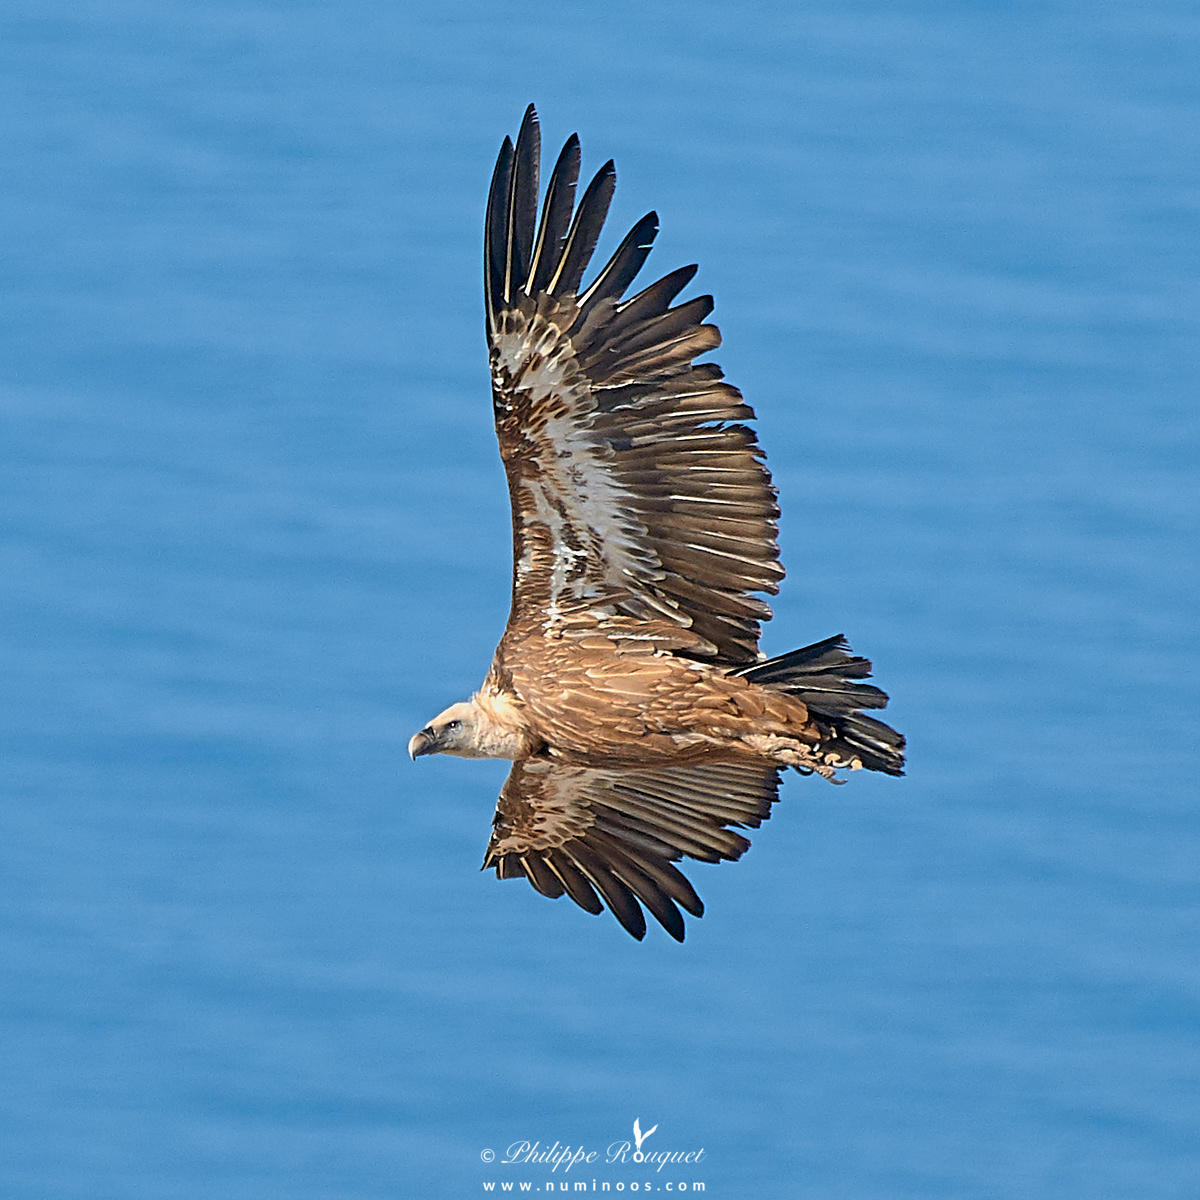 Eye level with Griffon vulture